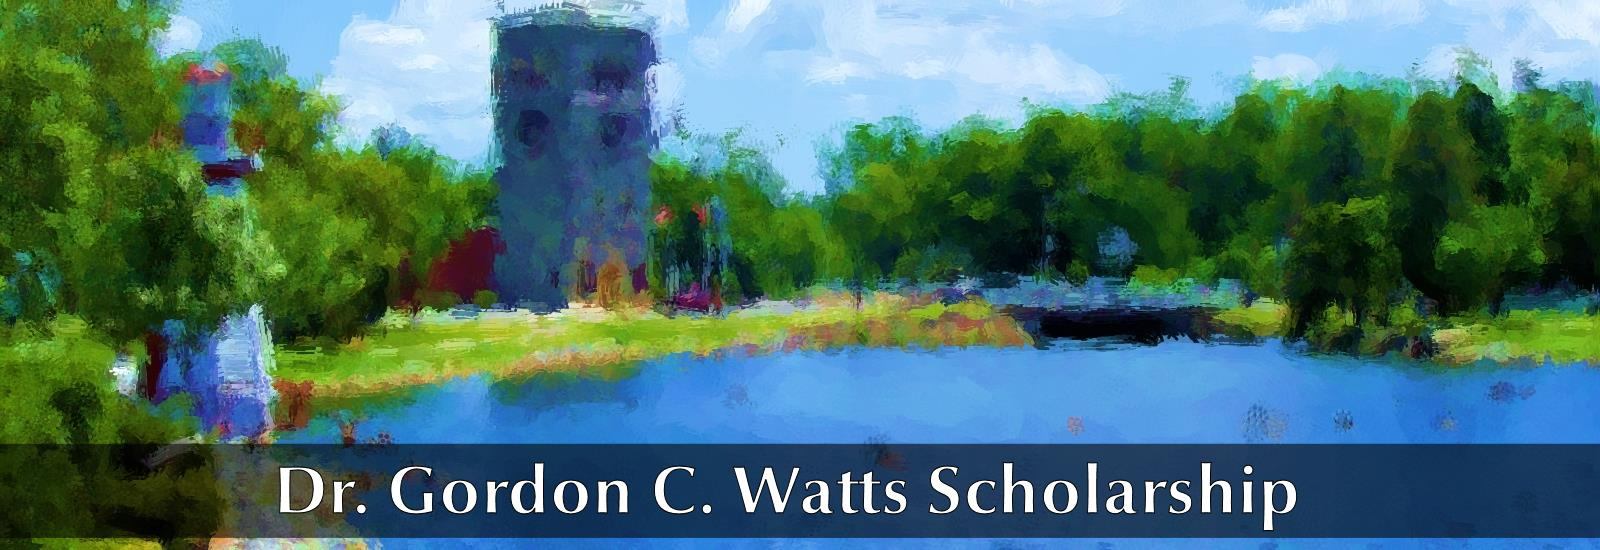 Dr. Gordon C. Watts Scholarship